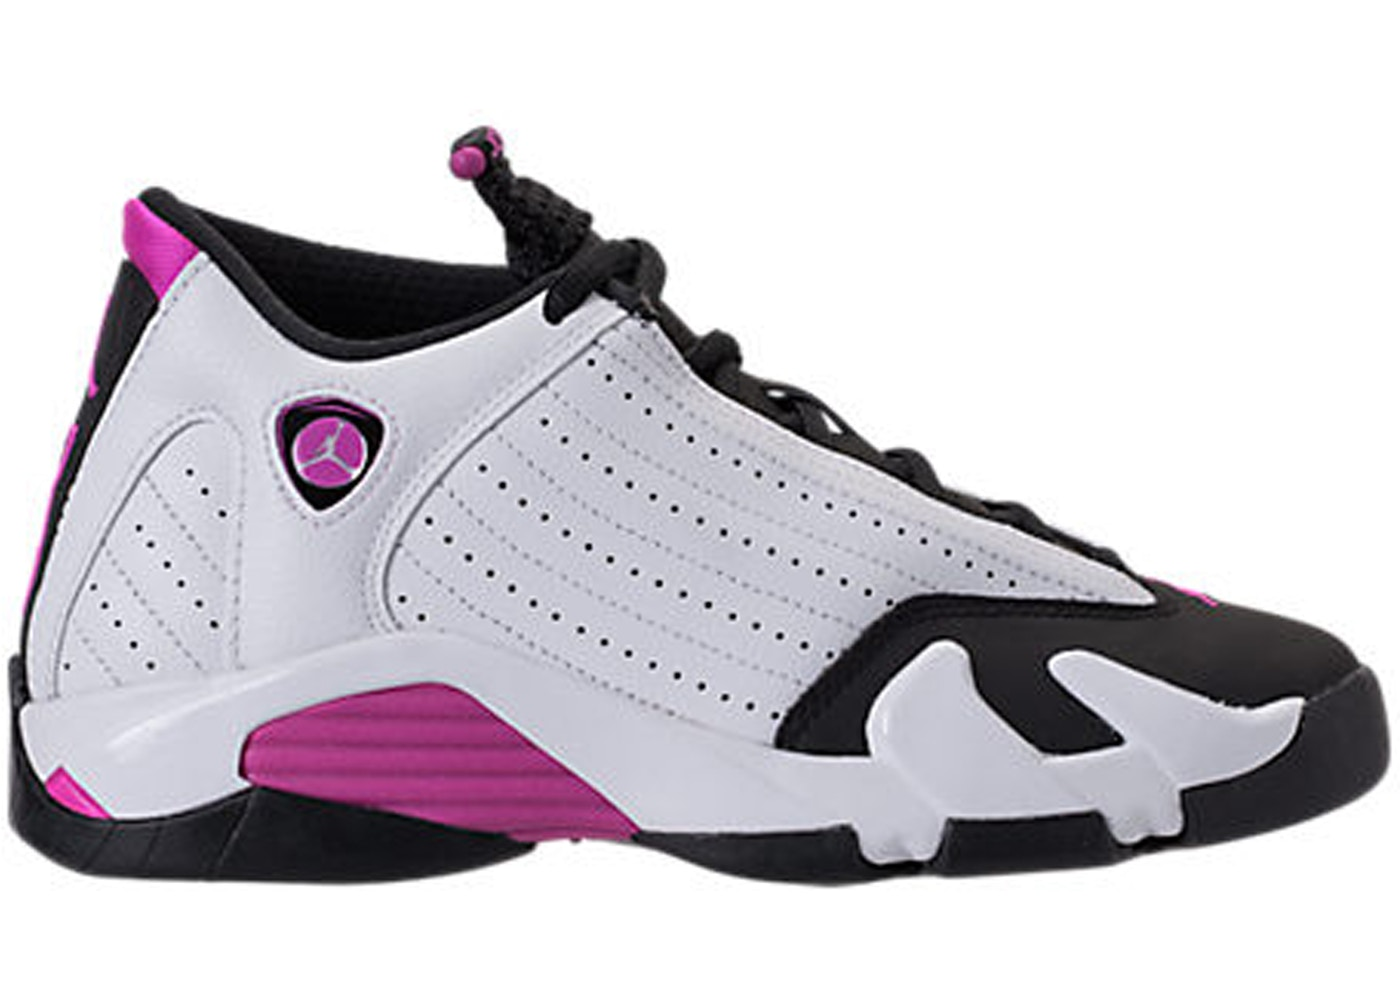 sports shoes 9f127 675c6 Buy Air Jordan 14 Shoes   Deadstock Sneakers